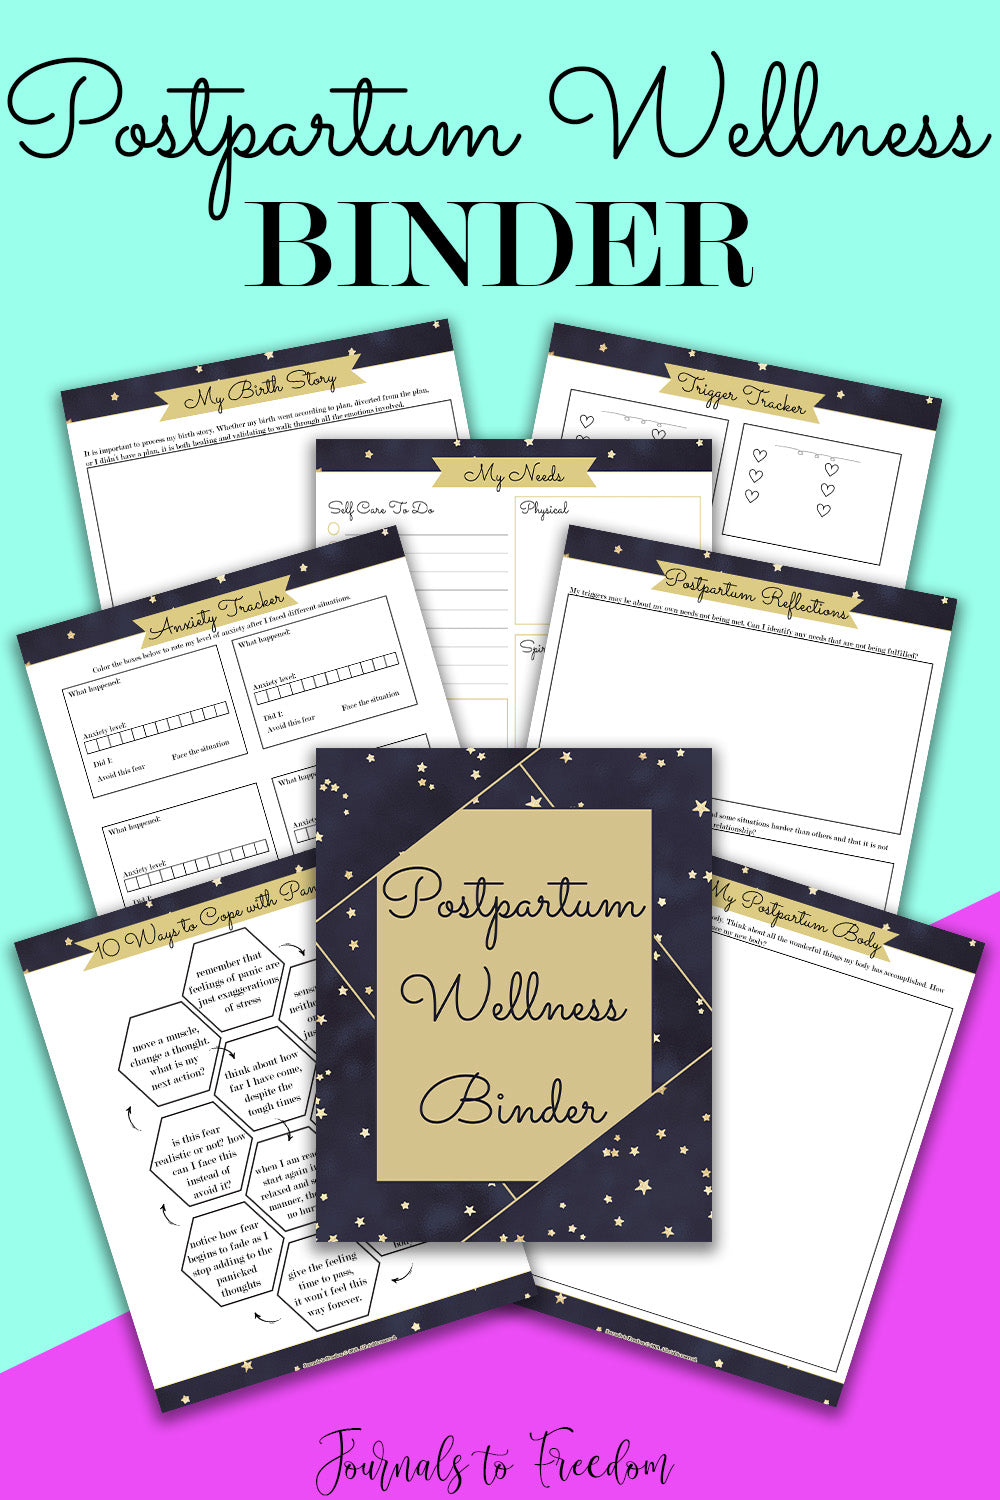 Postpartum Wellness Binder - Journals to Freedom Printables